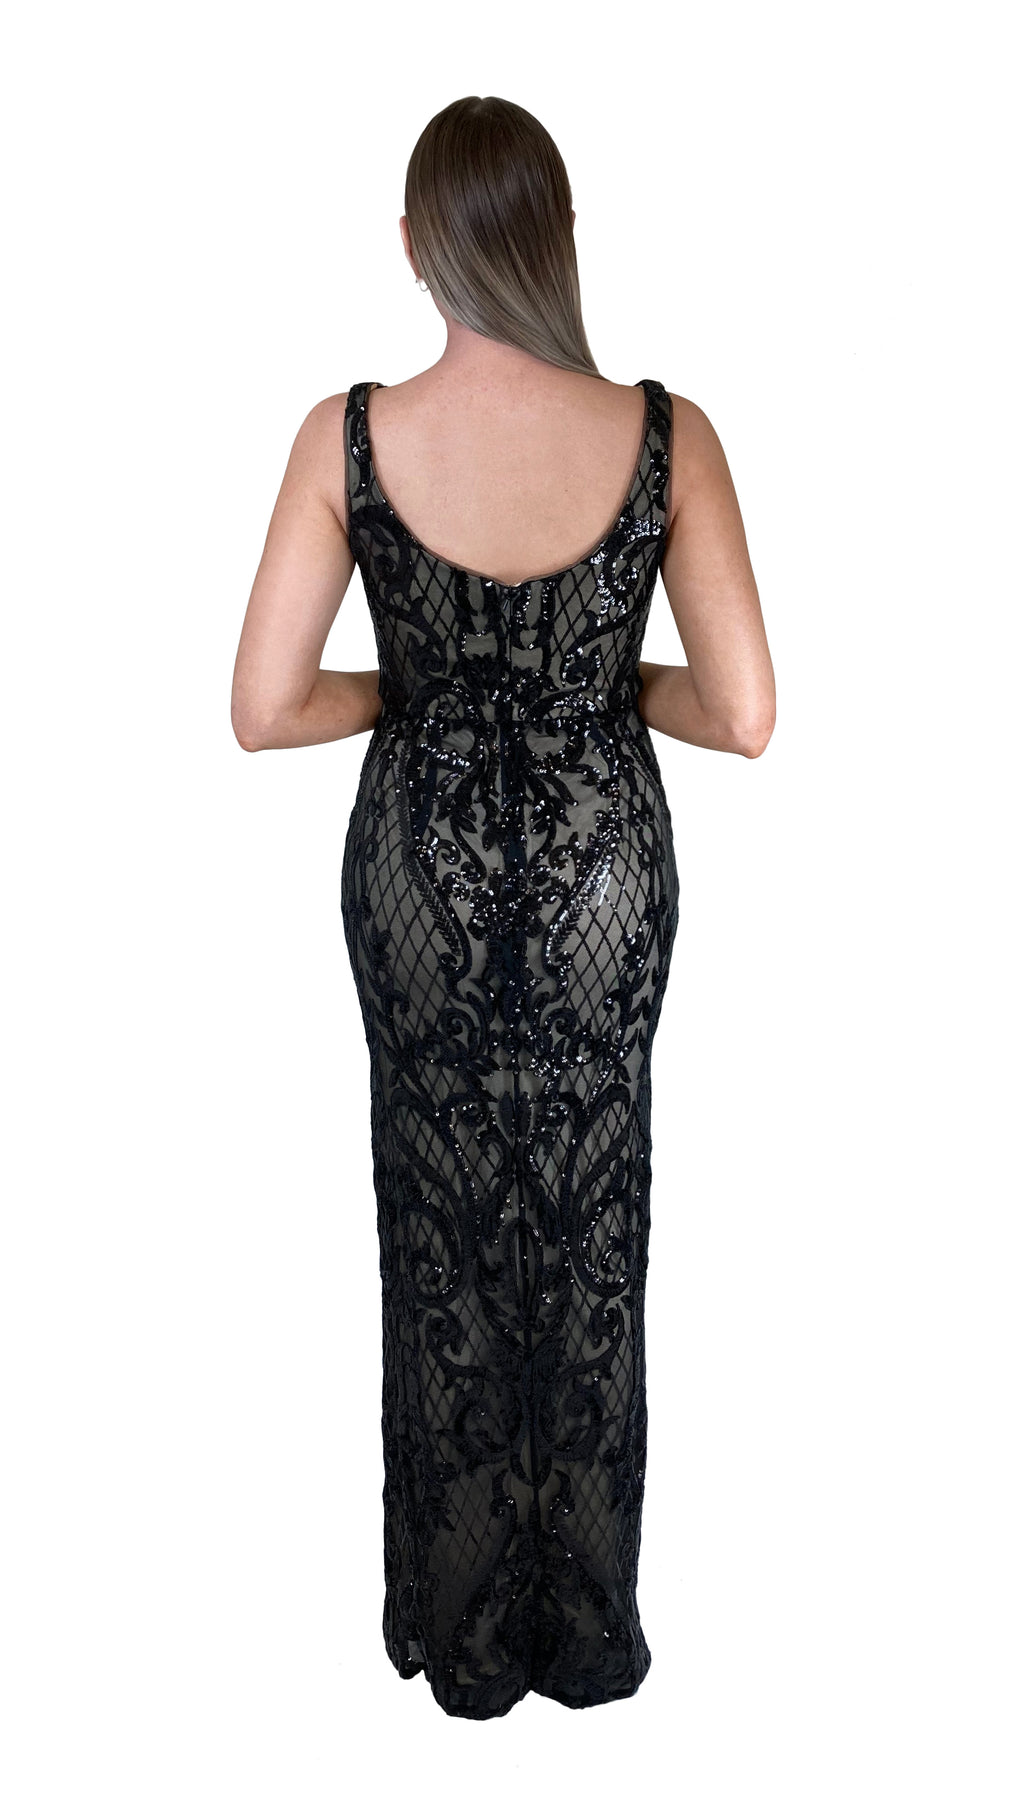 Bariano Dianne Scoop Pattern Sequin Gown Black & Nude sequin back